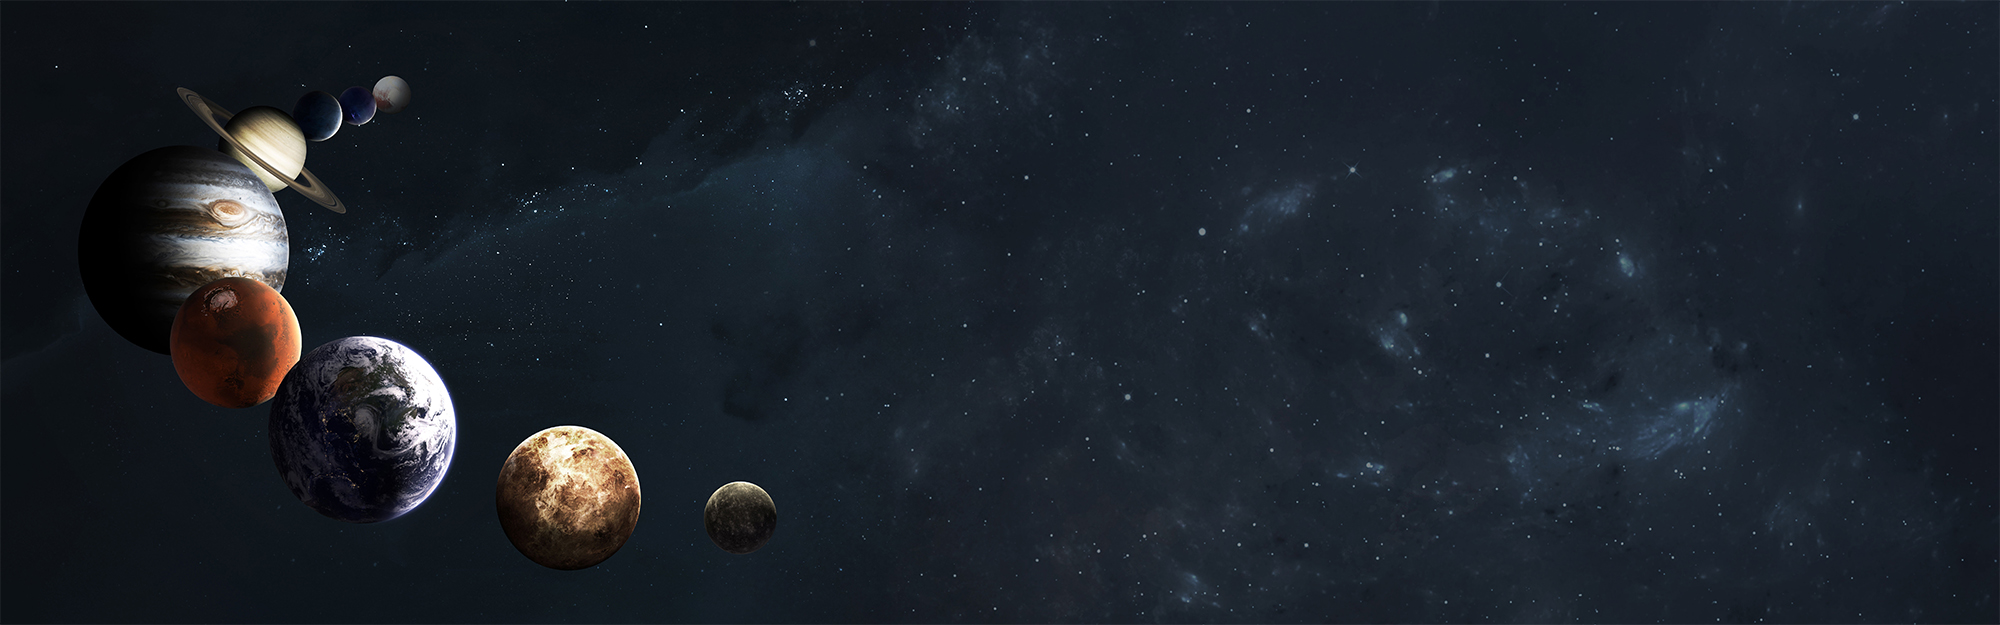 comstor-cosmos-banner